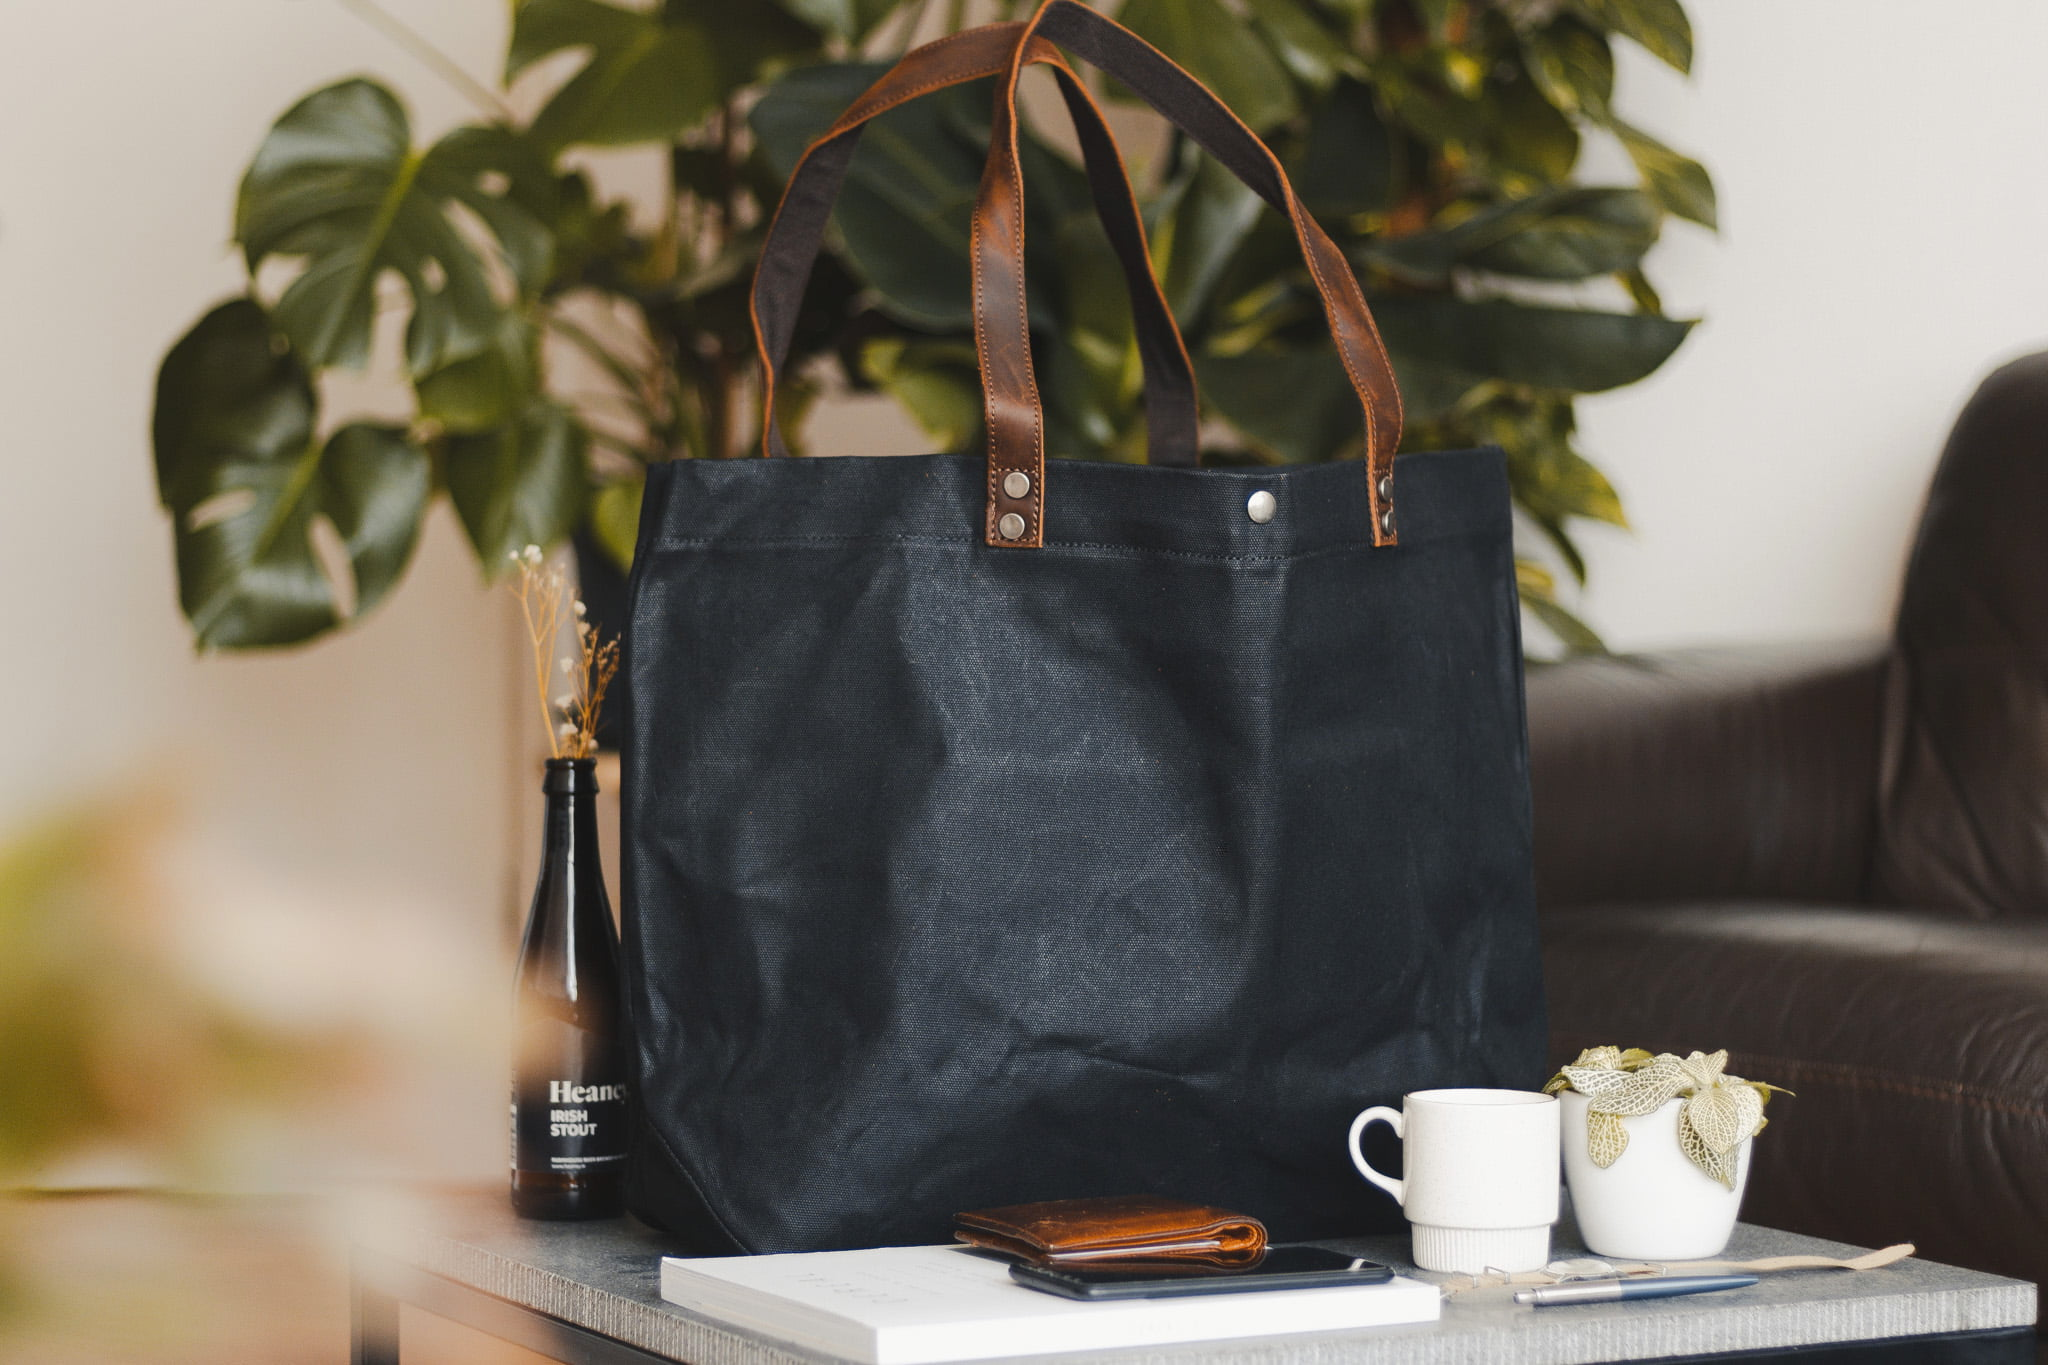 Waxed Cotton Canvas and Leather Tote Bag - Rugged Weatherproof Shoulder Hand Bag Tote - The Brierley Tote in Graphite Black by Oldfield